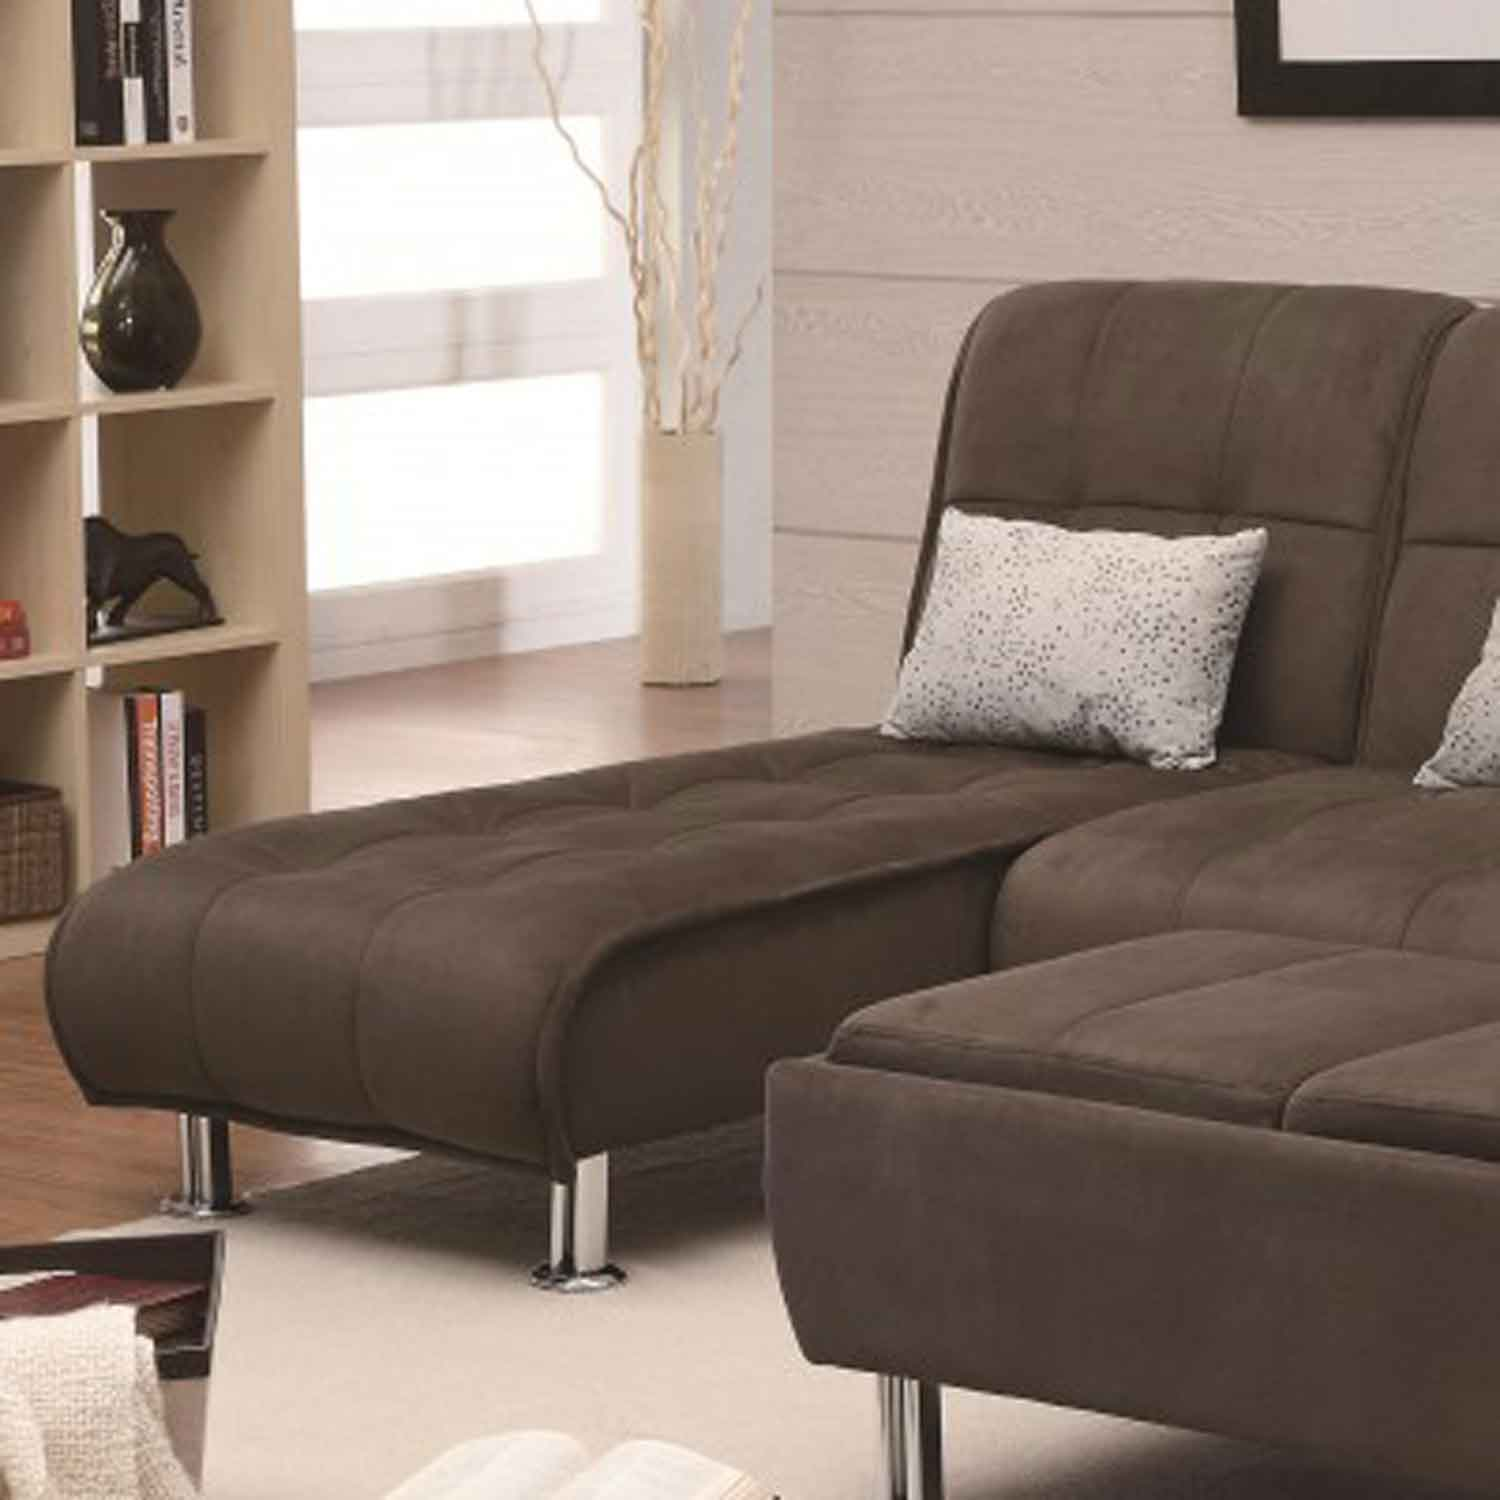 Coaster 300276 Chaise Bed - Brown